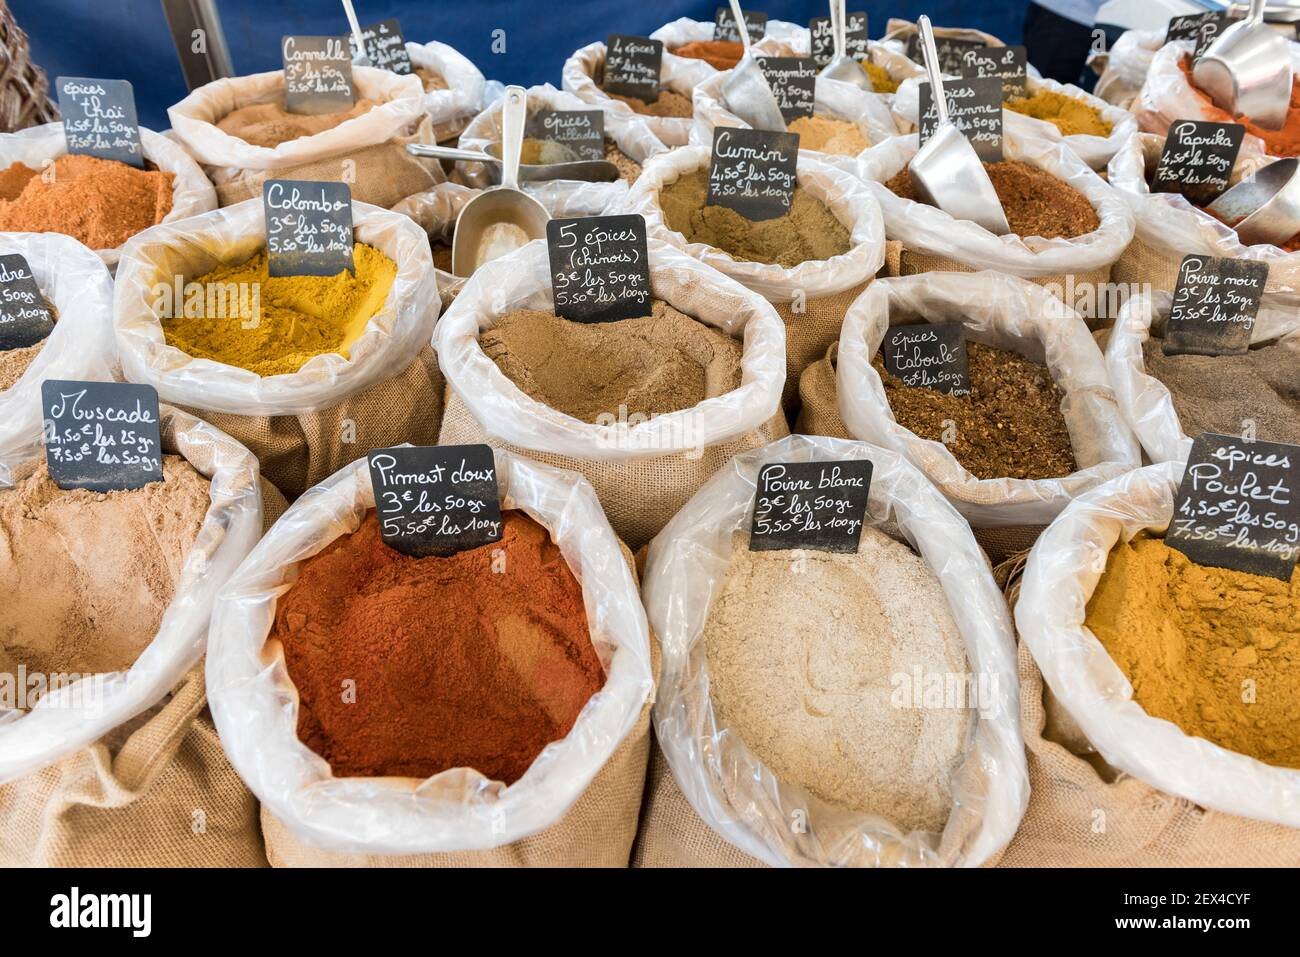 Spice bags at a summer market, Provence, France Stock Photo